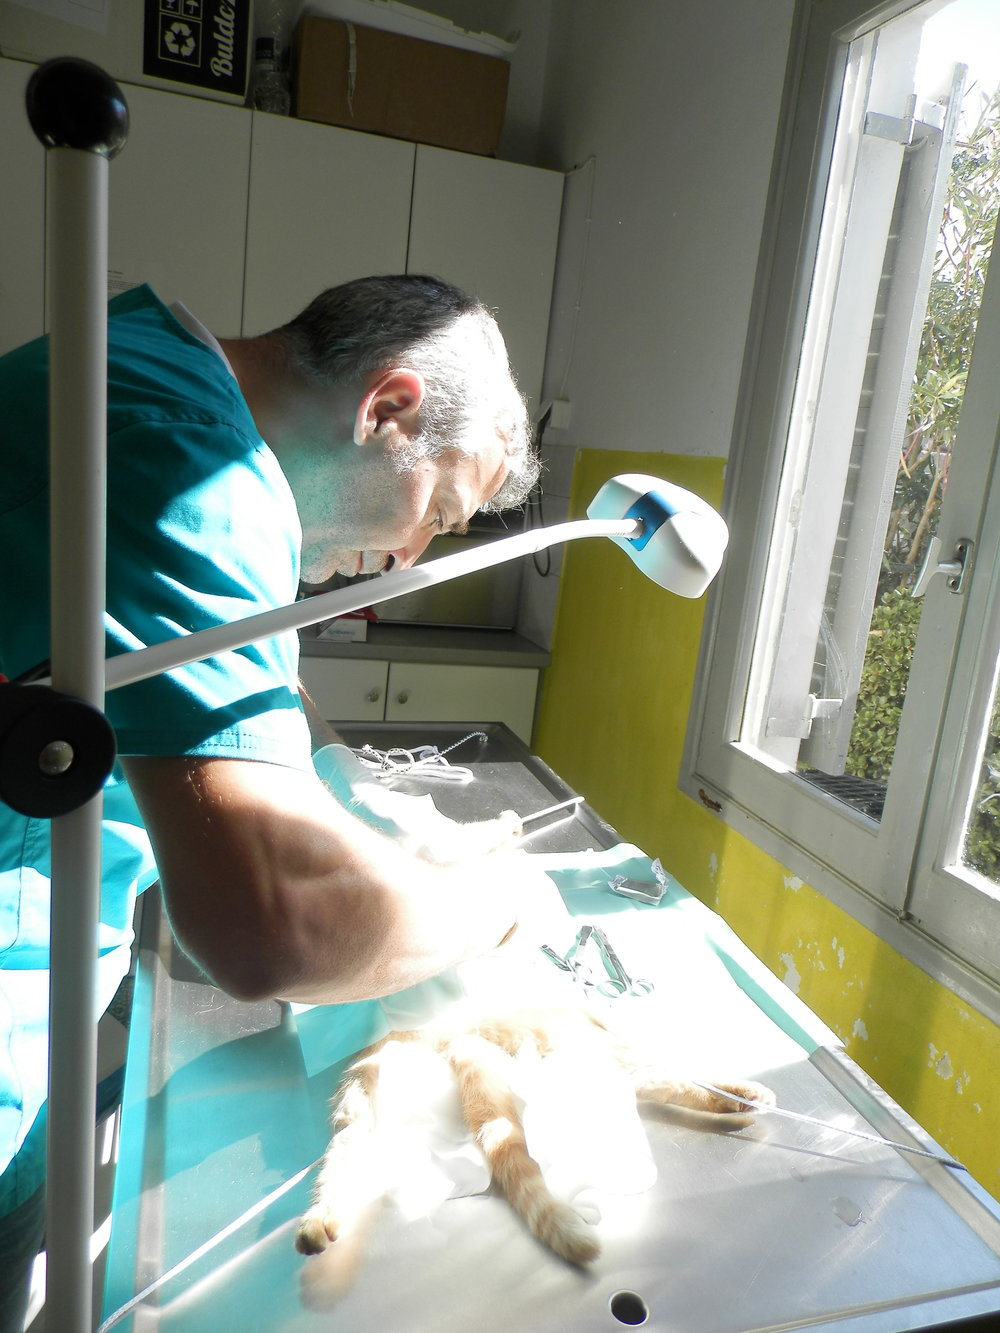 Dr. Manolis Vorisis during the work.